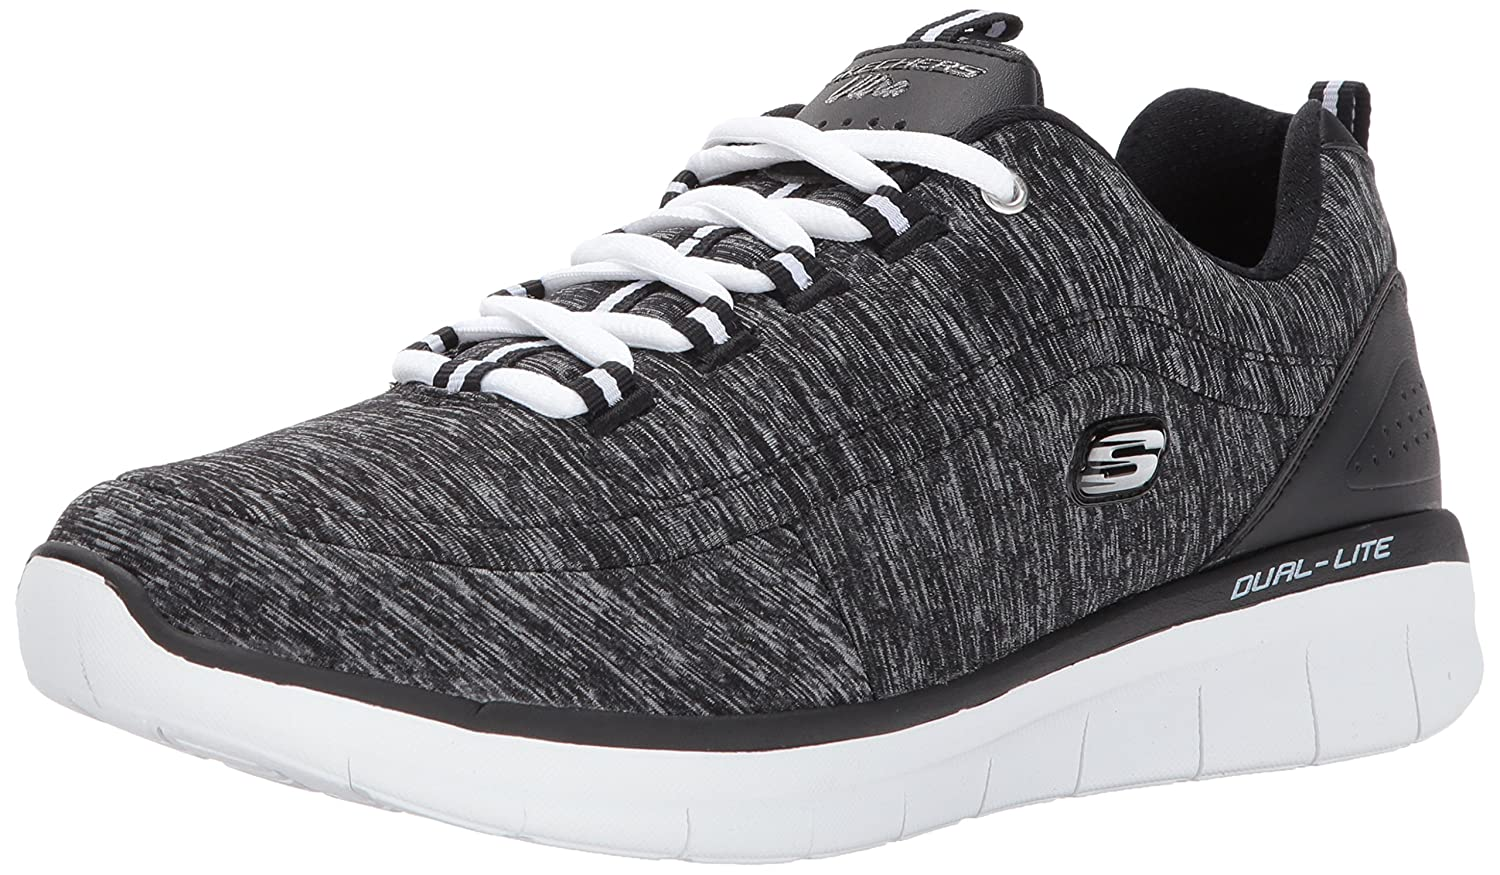 Skechers Sport Women's Synergy 2.0-Headliner Wide Fashion Sneaker B074CMV1K1 8.5 C US|Black/White